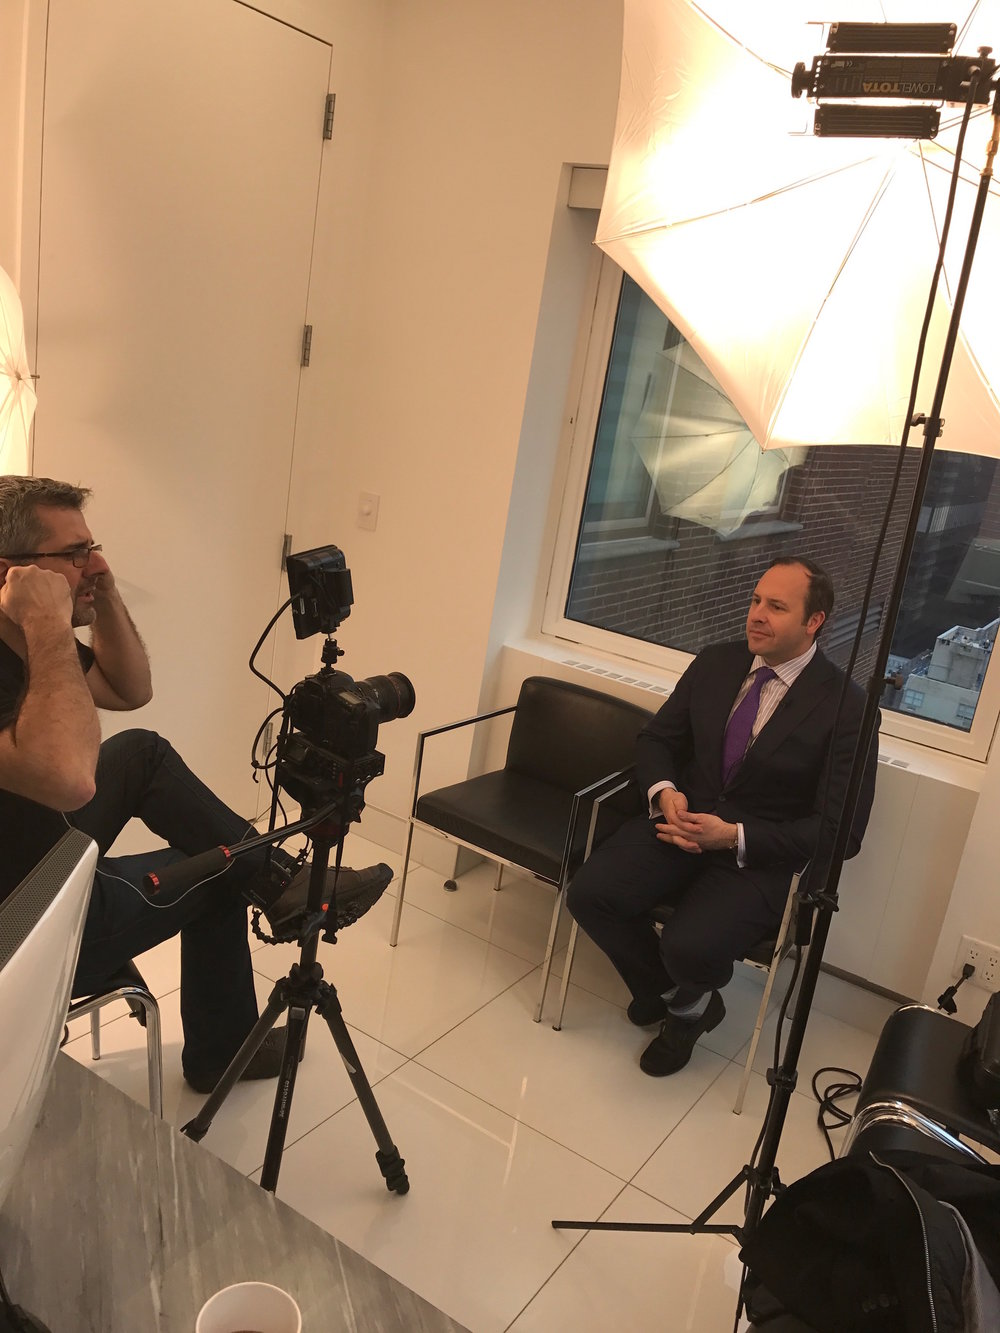 Dr. Zuckerman's Mommy Makeover plastic surgery video feature in progress.